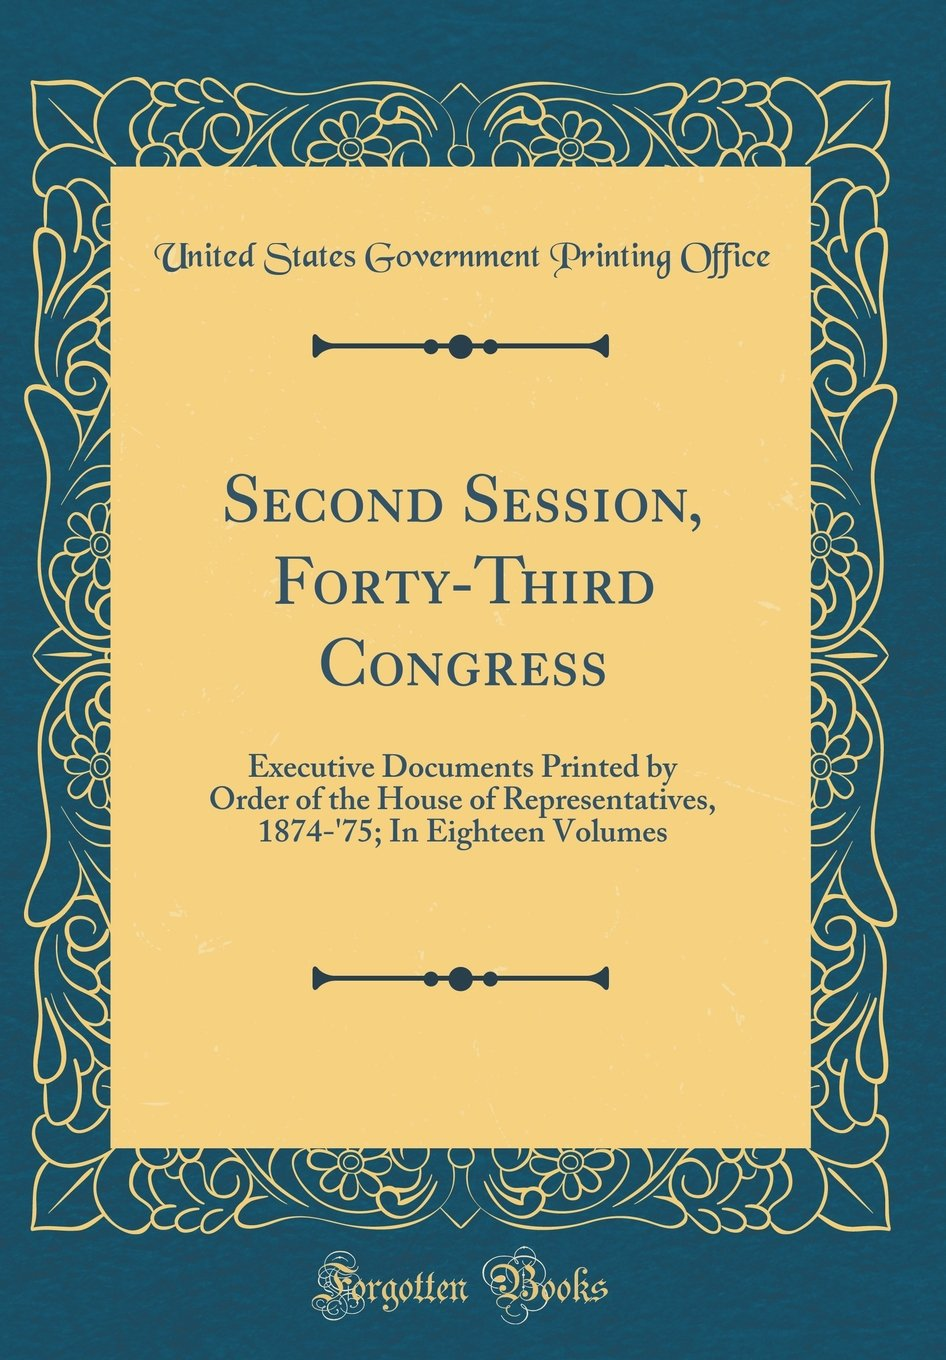 Download Second Session, Forty-Third Congress: Executive Documents Printed by Order of the House of Representatives, 1874-'75; In Eighteen Volumes (Classic Reprint) PDF ePub ebook